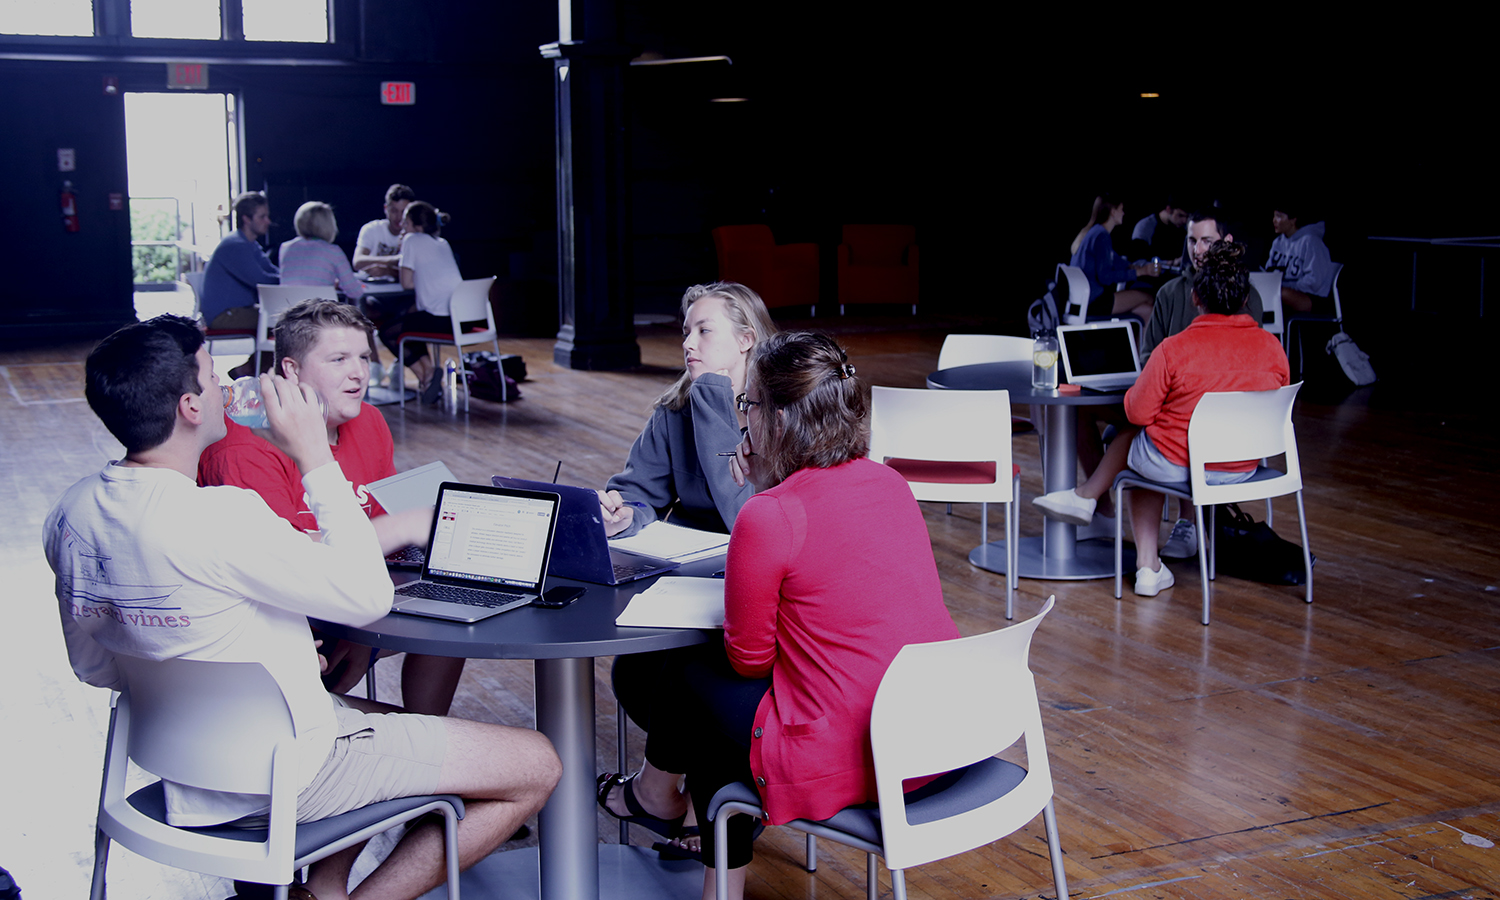 Students participating in the HWS Summer Sandbox break out into group for coaching sessions in Coxe Hall.